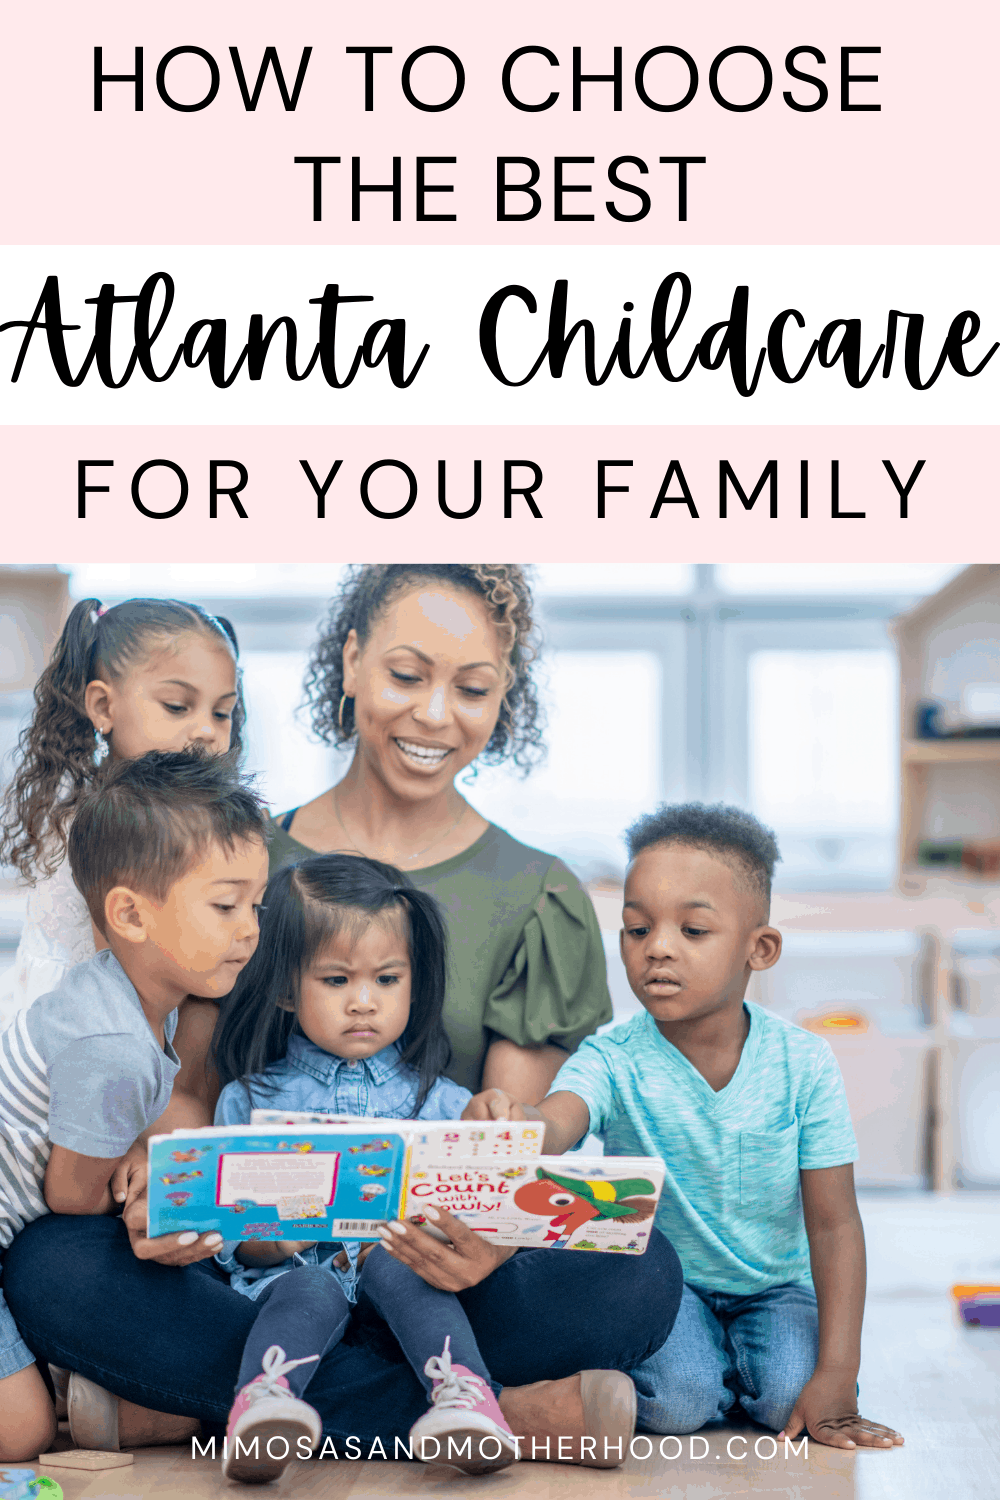 review of childcare website